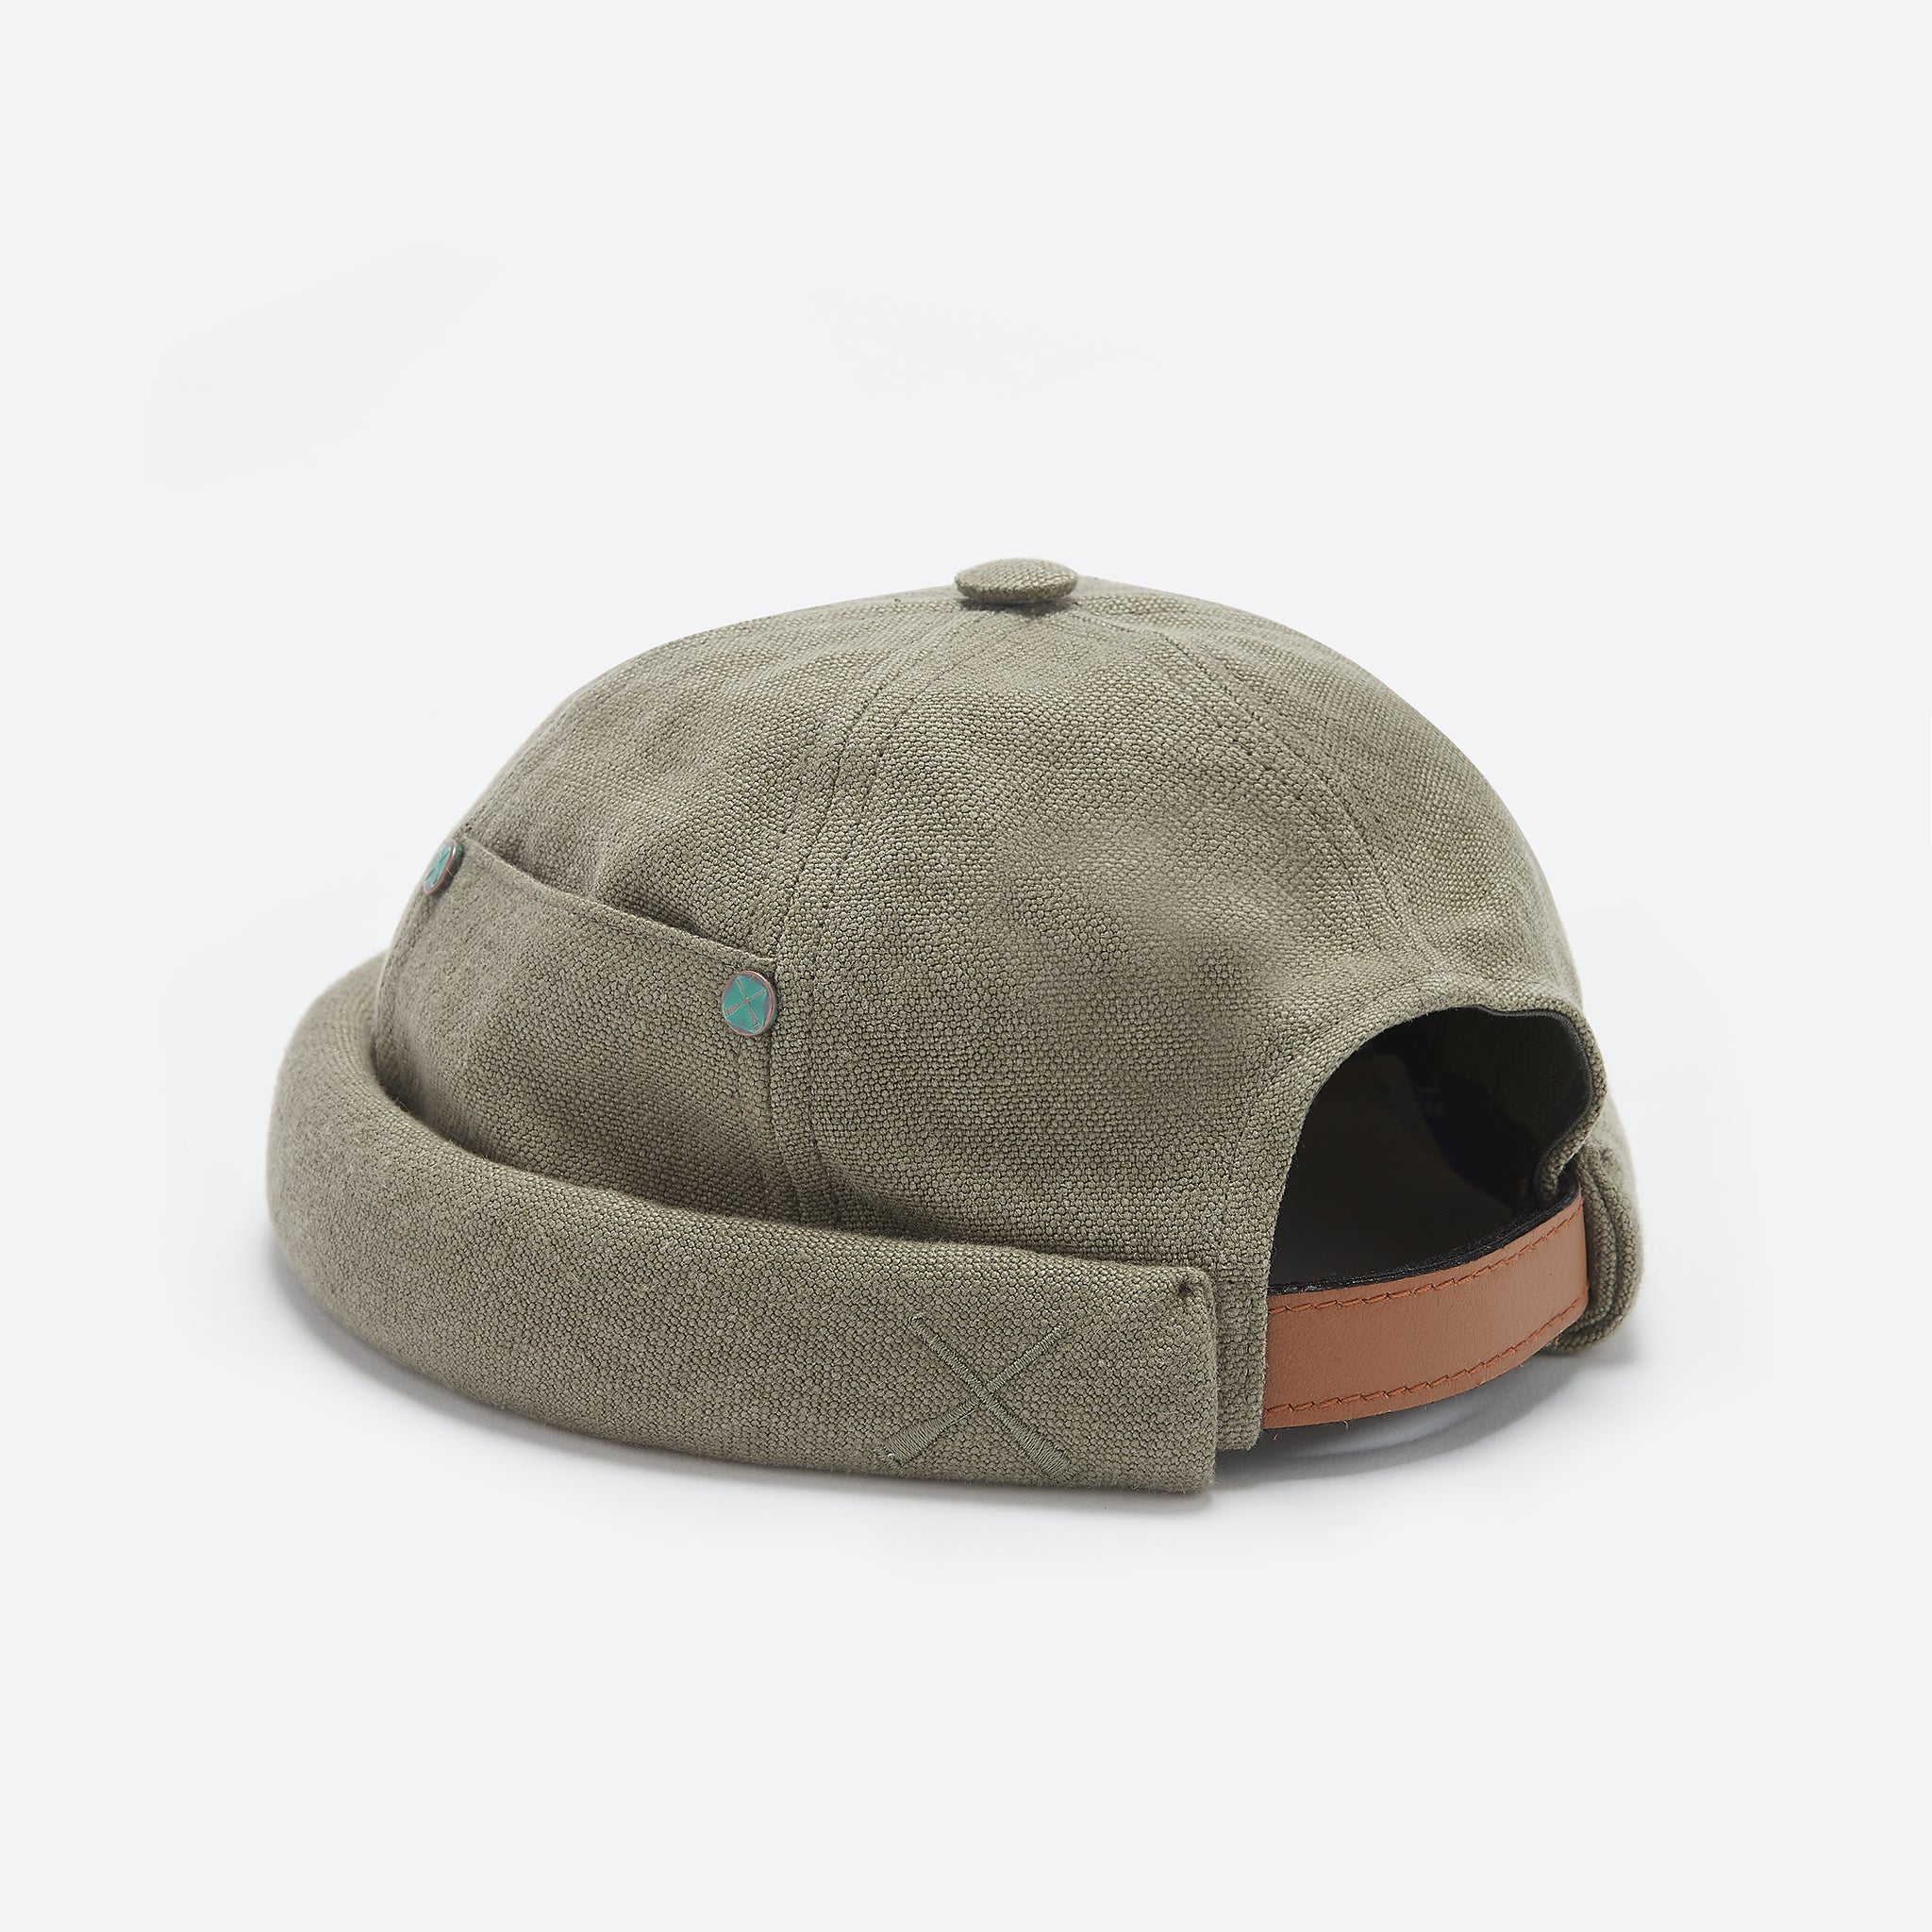 Beton Cire Miki Hat in Khaki Linen — Our Daily Edit 2fd4137bcaaf